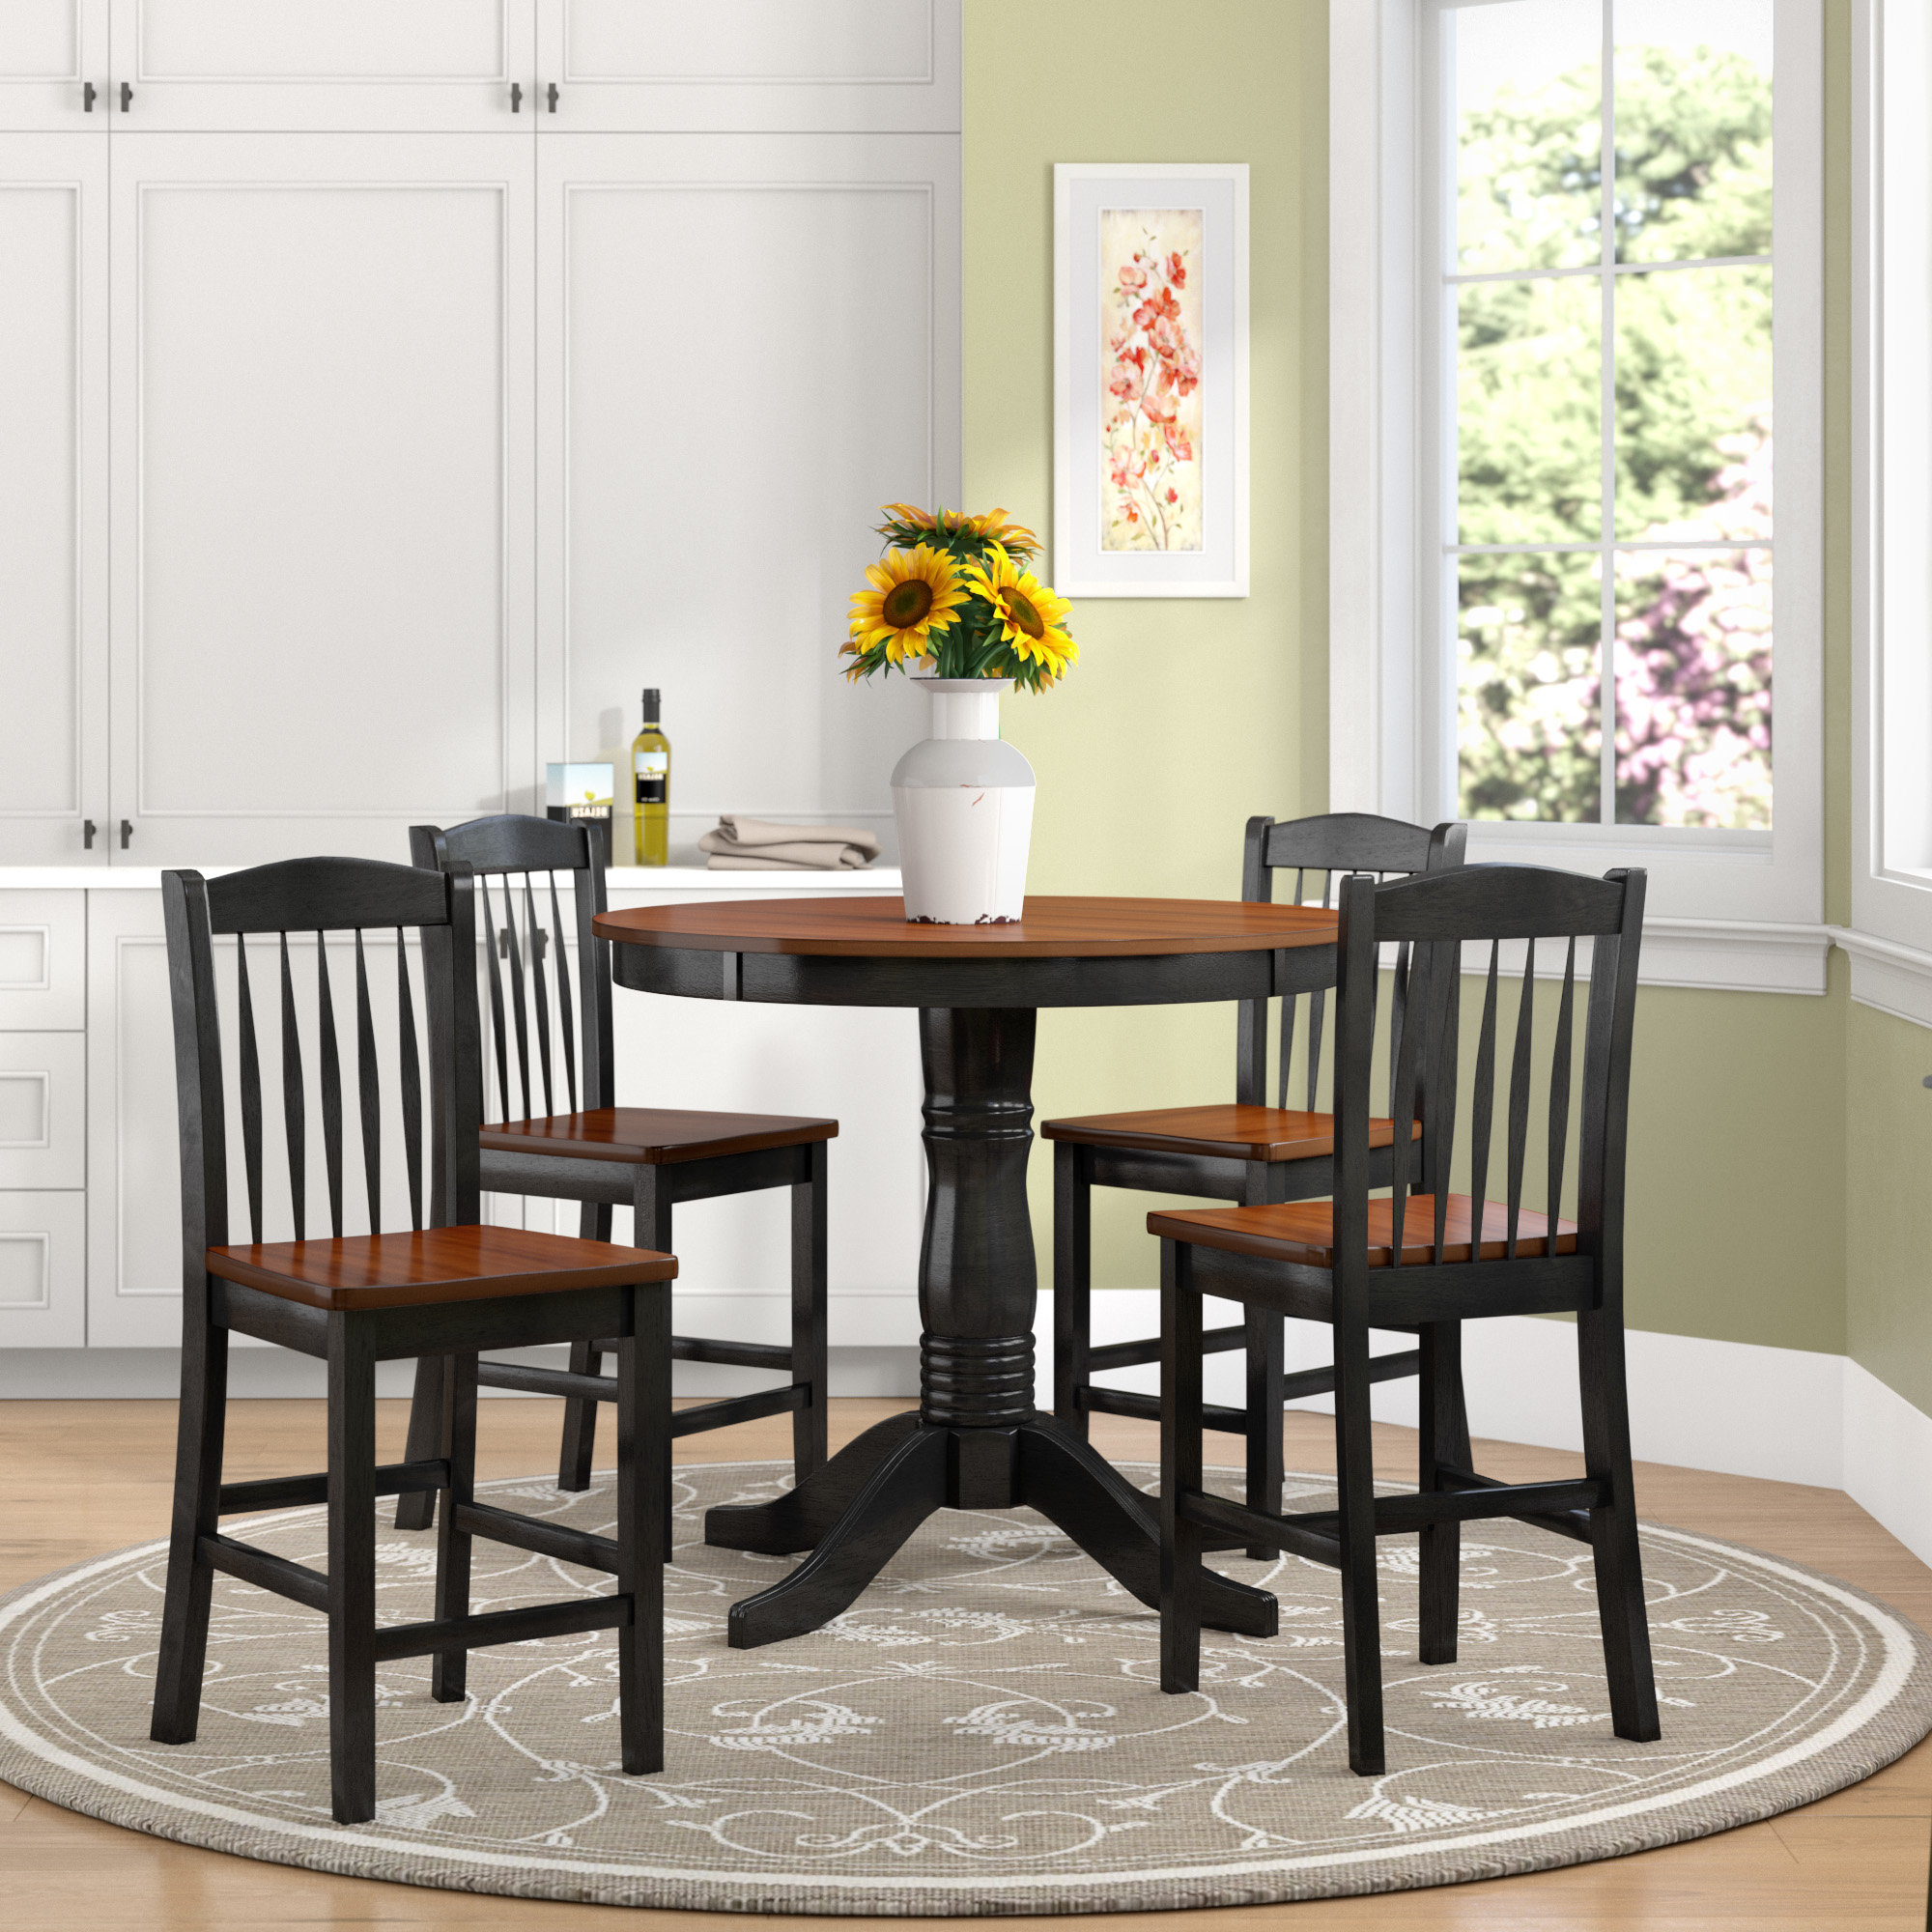 Fashionable Pattonsburg 5 Piece Dining Sets With Regard To August Grove Tighe 5 Piece Dining Set & Reviews (View 4 of 25)